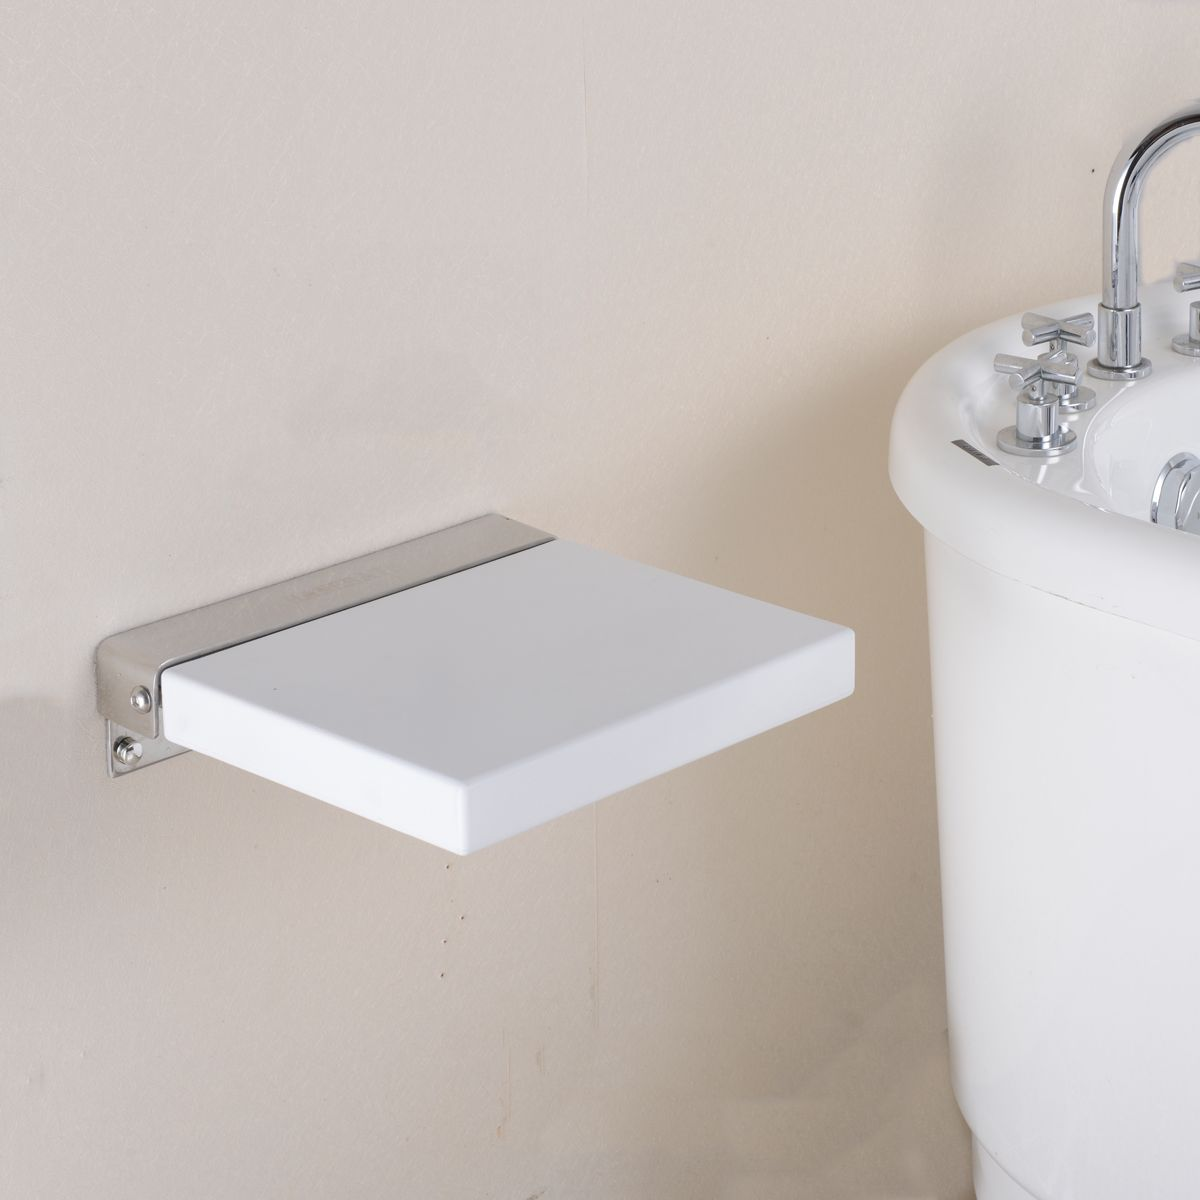 HANEBATH Folding Shower Seat , White - 304 Stainless Steel and ...